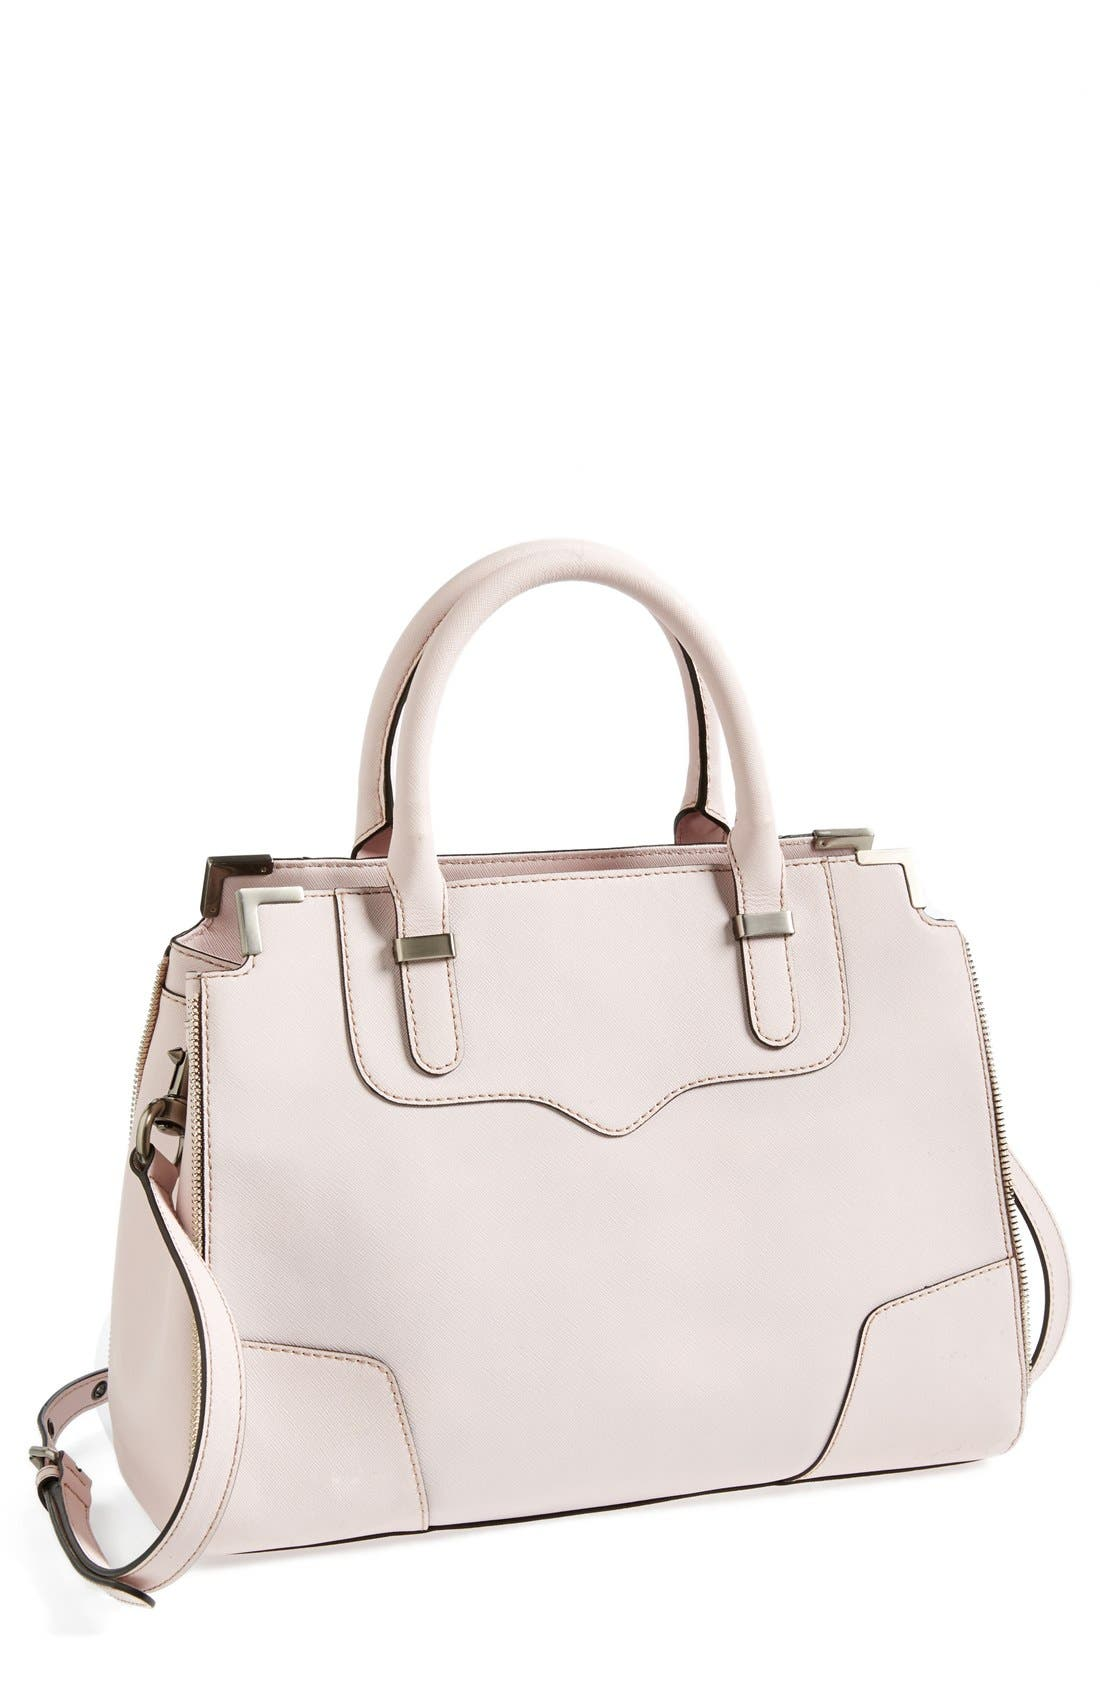 Alternate Image 1 Selected - Rebecca Minkoff 'Amourous' Leather Satchel